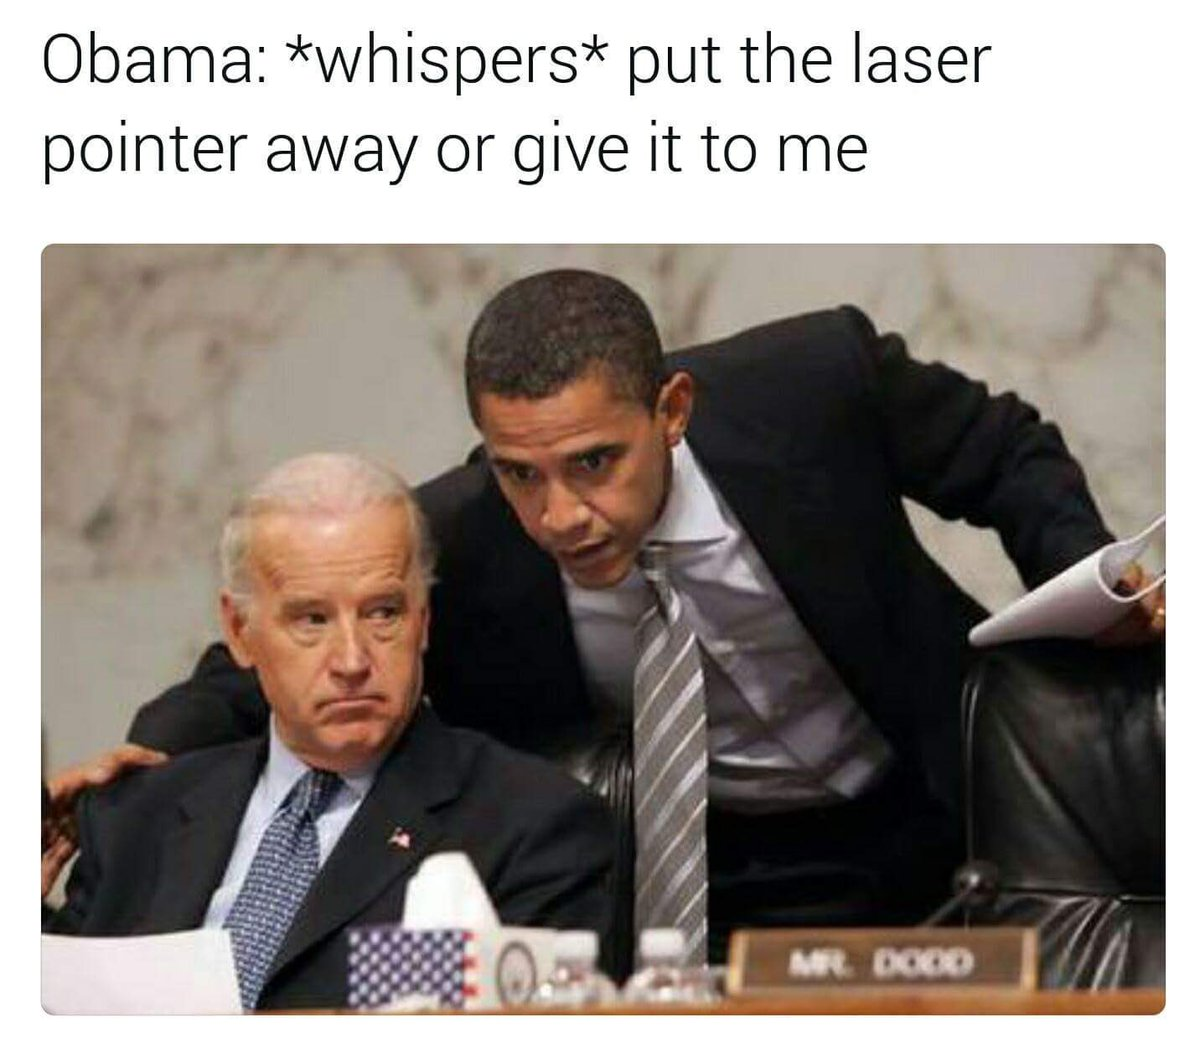 biden joe obama memes meme laser president pointer election funny put hilarious barack thing birthday come funniest hiphopdx trend internet